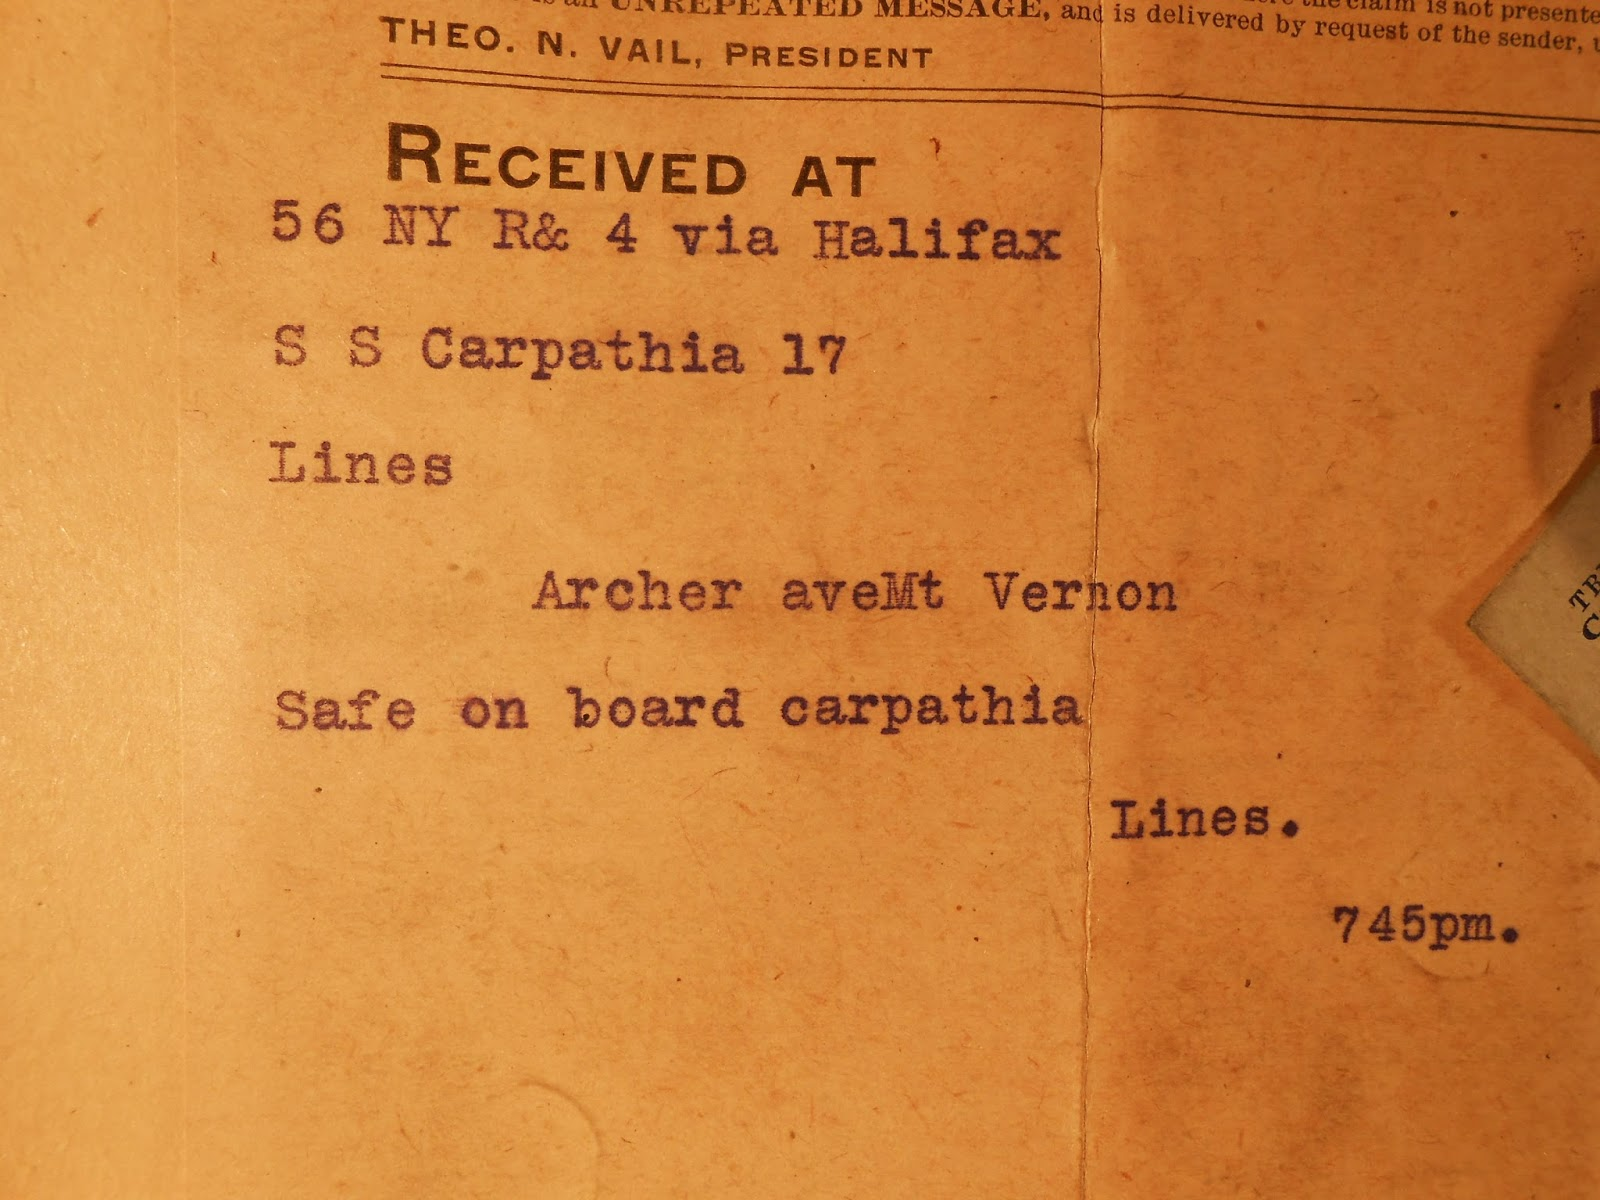 A photograph of a telegram announcing safety onboard the Carpathia.